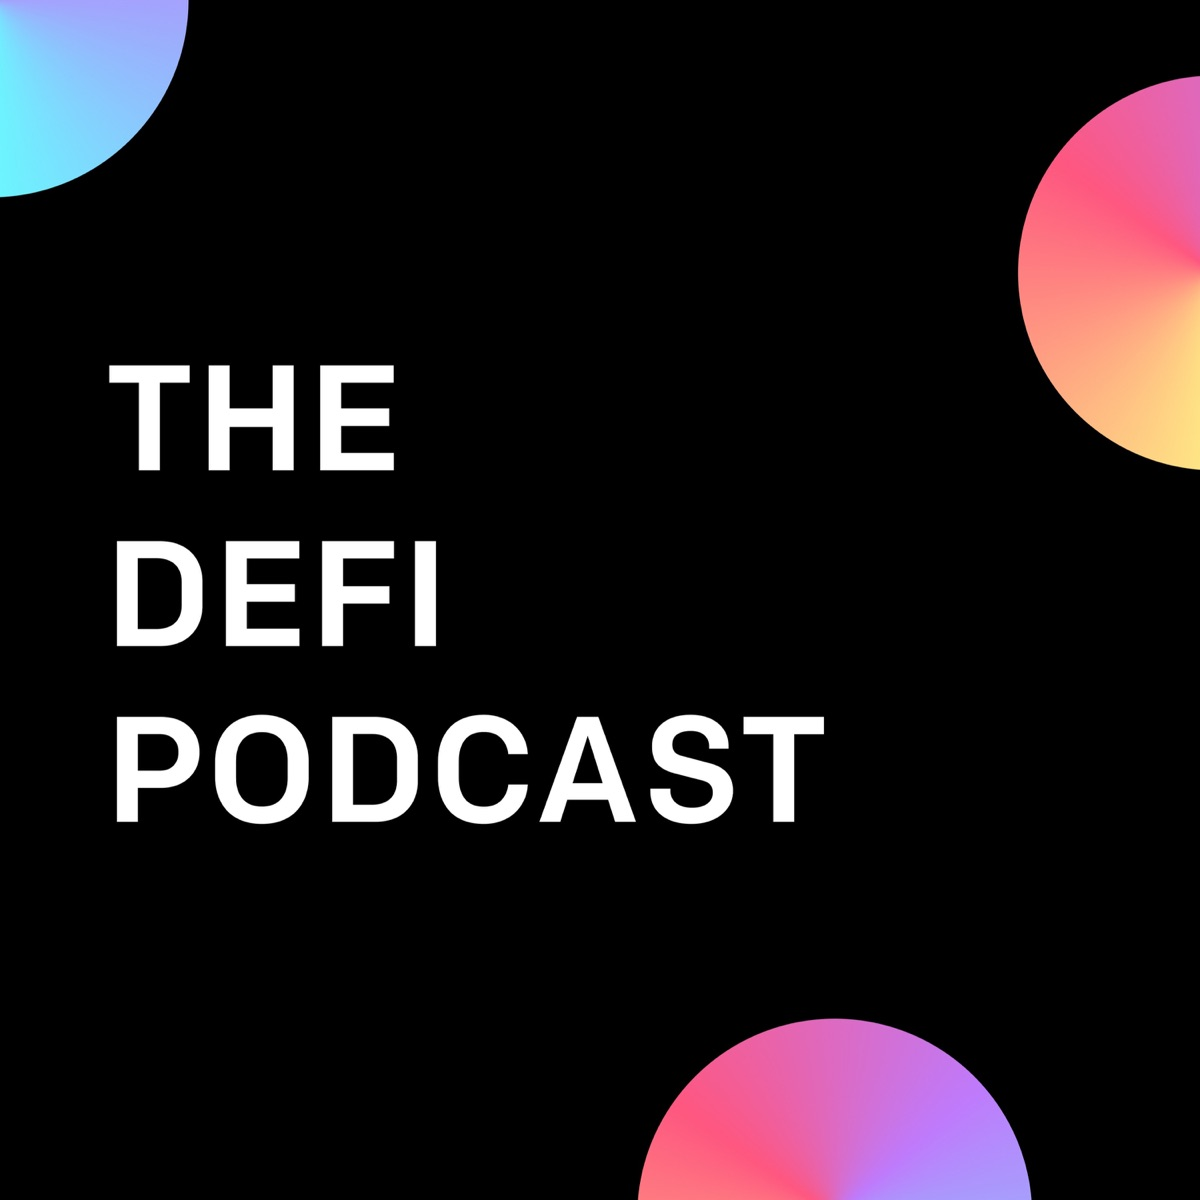 The DeFi Podcast